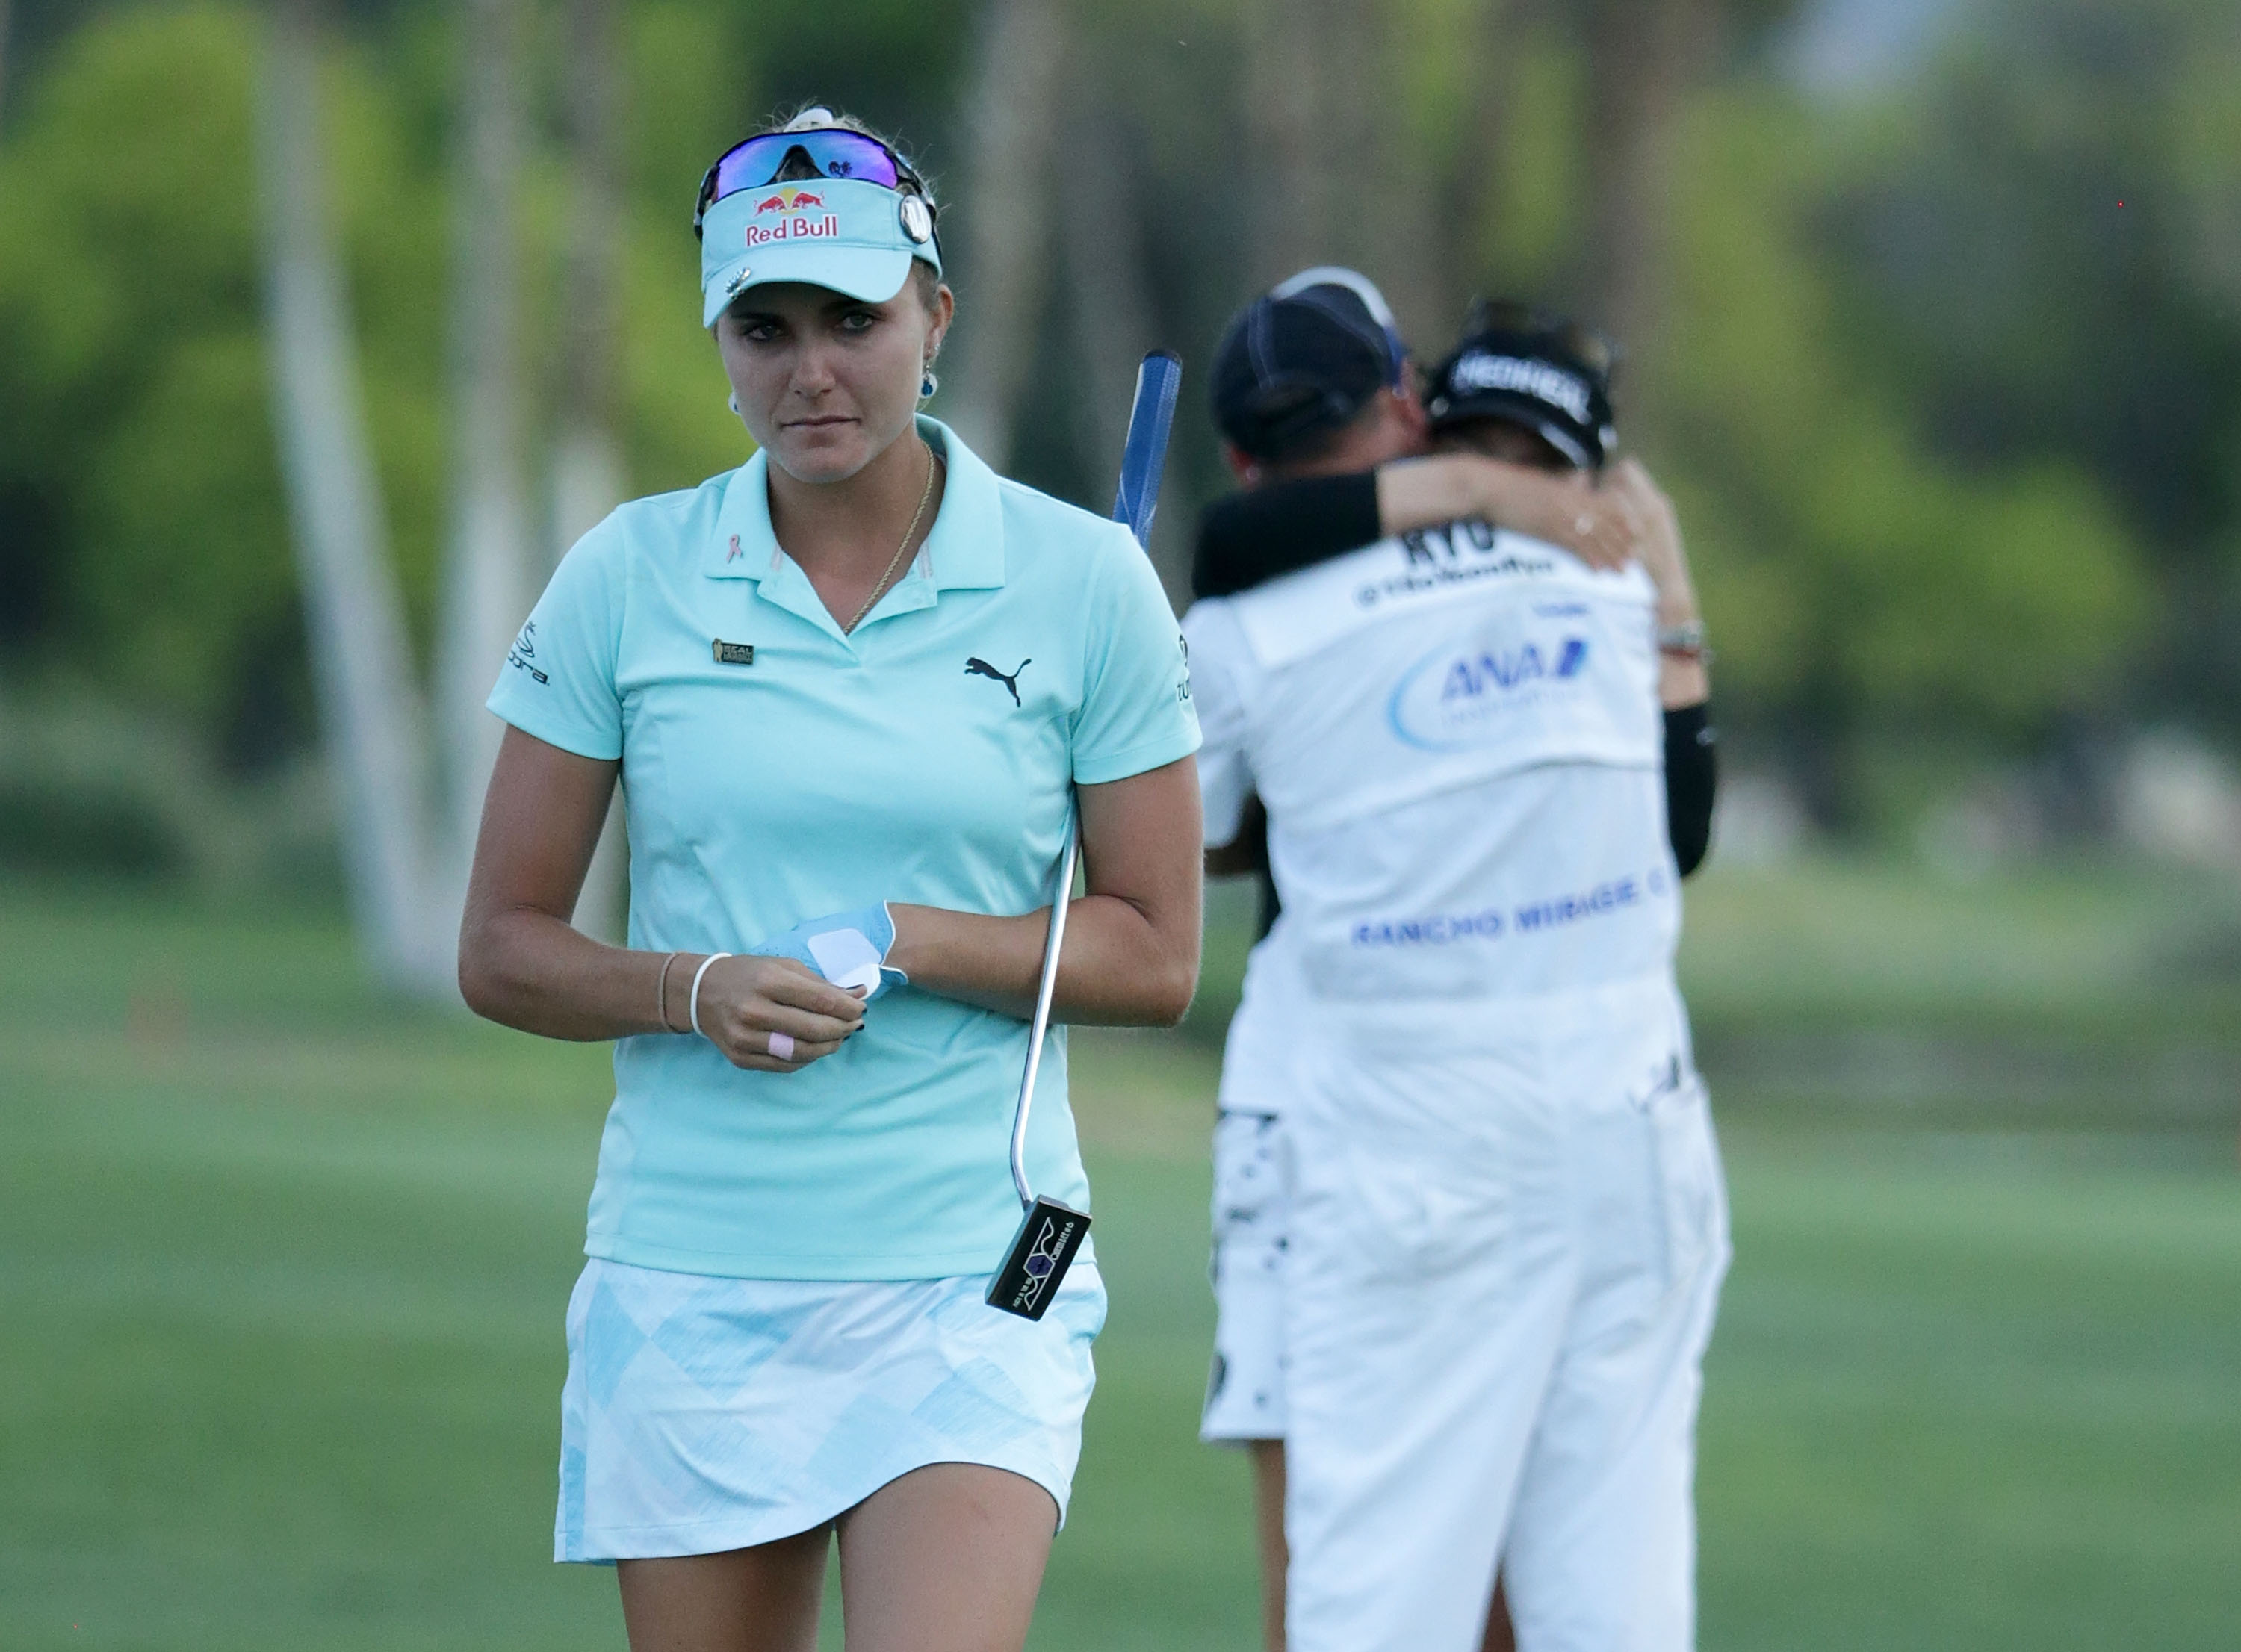 Lexi Thompson (L) walks off the 18th green as So Yeon Ryu of the Republic of Korea celebrates with her caddie after Ryu defeated Thompson in a playoff during the final round of the ANA Inspiration at the Dinah Shore Tournament Course at Mission Hills Country Club on April 2, 2017 in Rancho Mirage, California. (Getty Images)